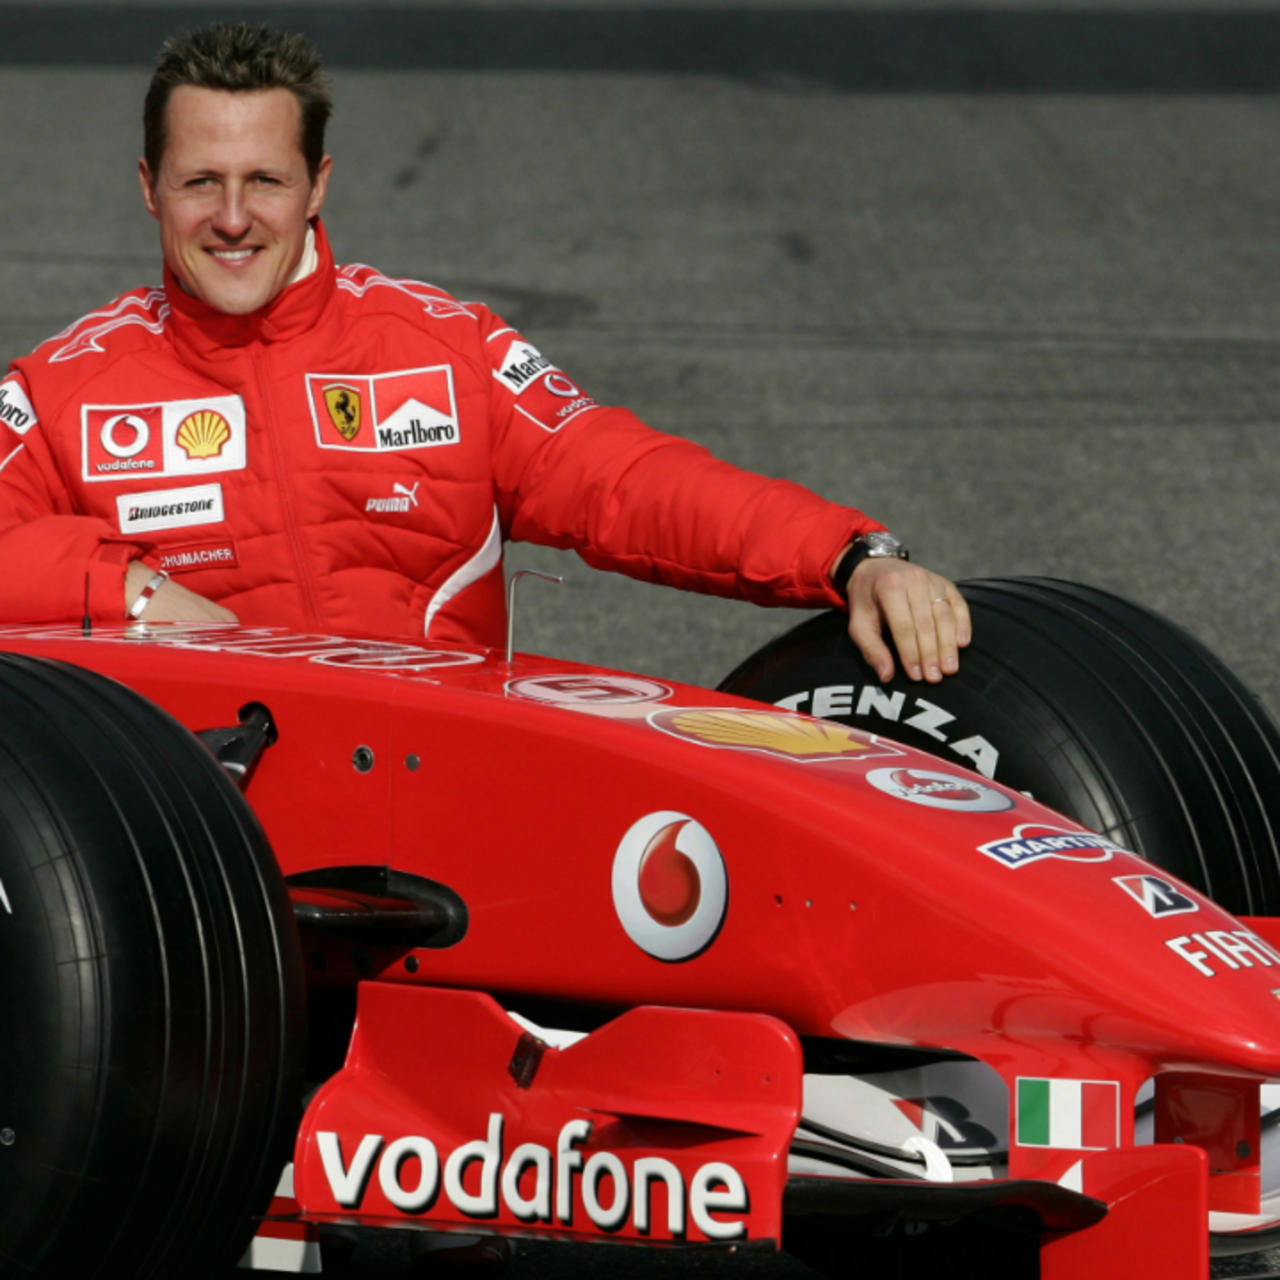 Top 10 F1 Drivers Of All Time